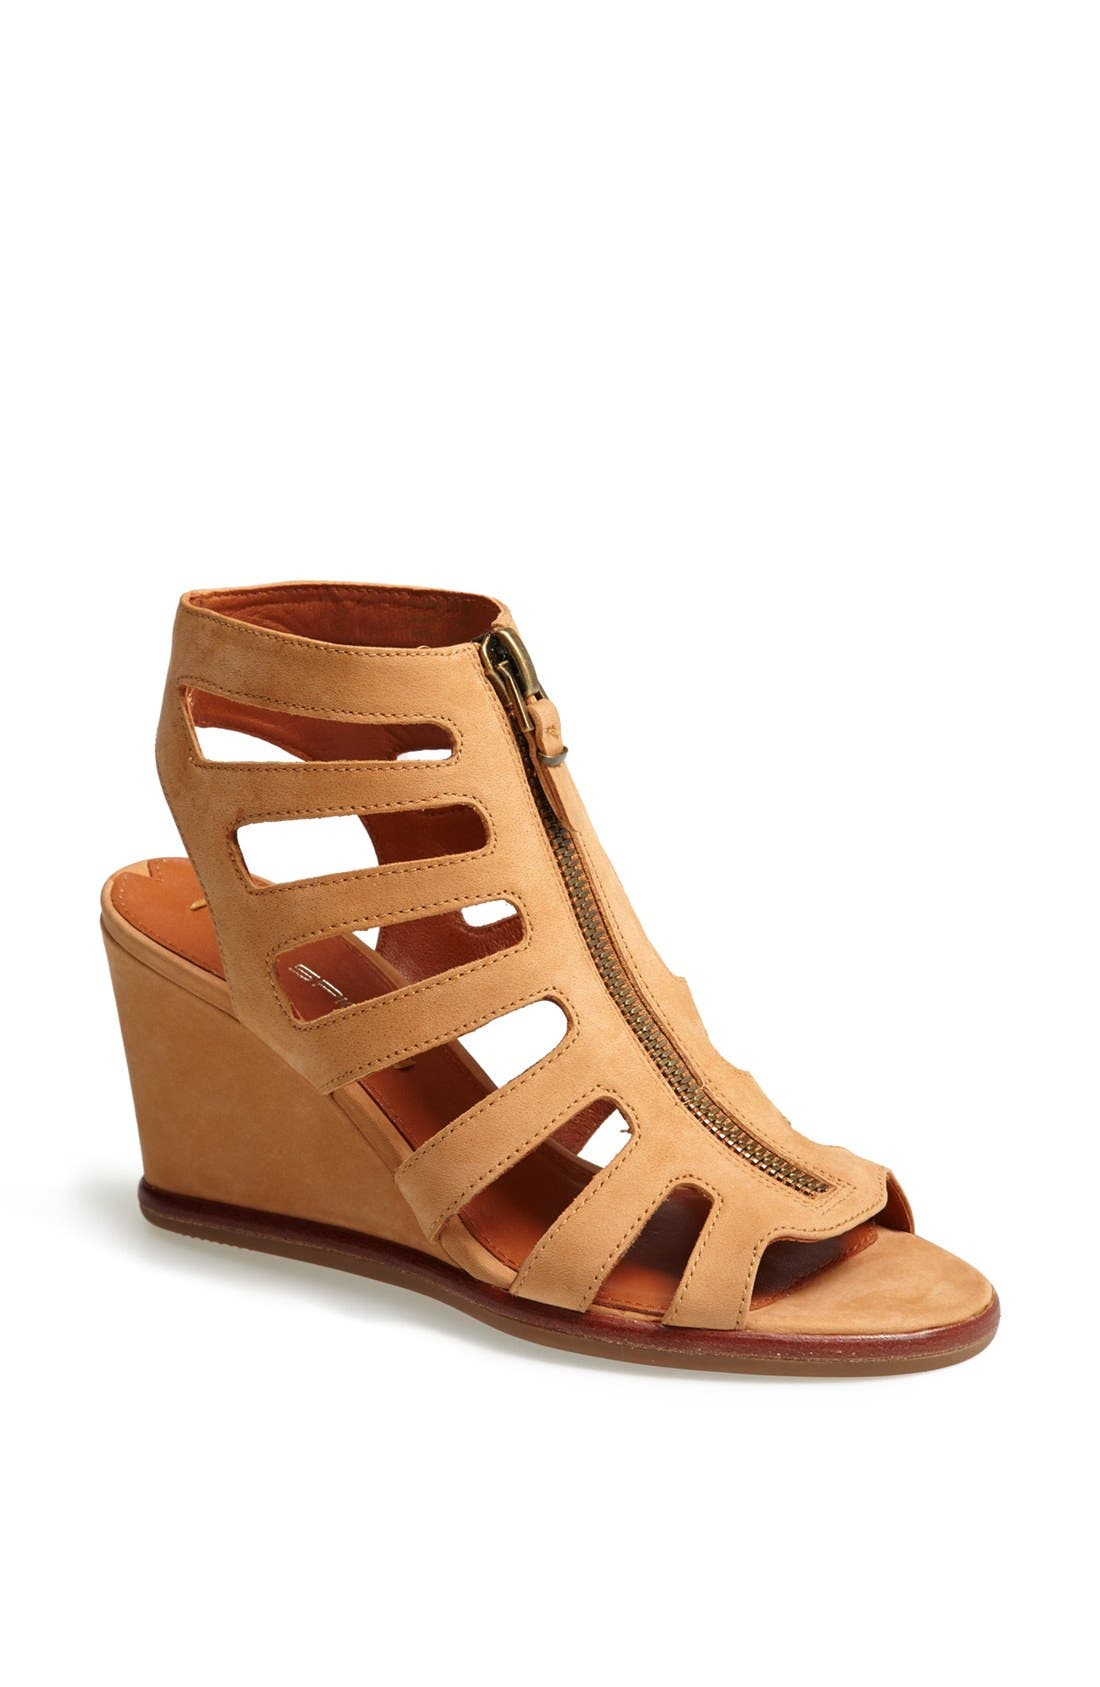 Main Image - Via Spiga 'Denisha' Wedge Sandal